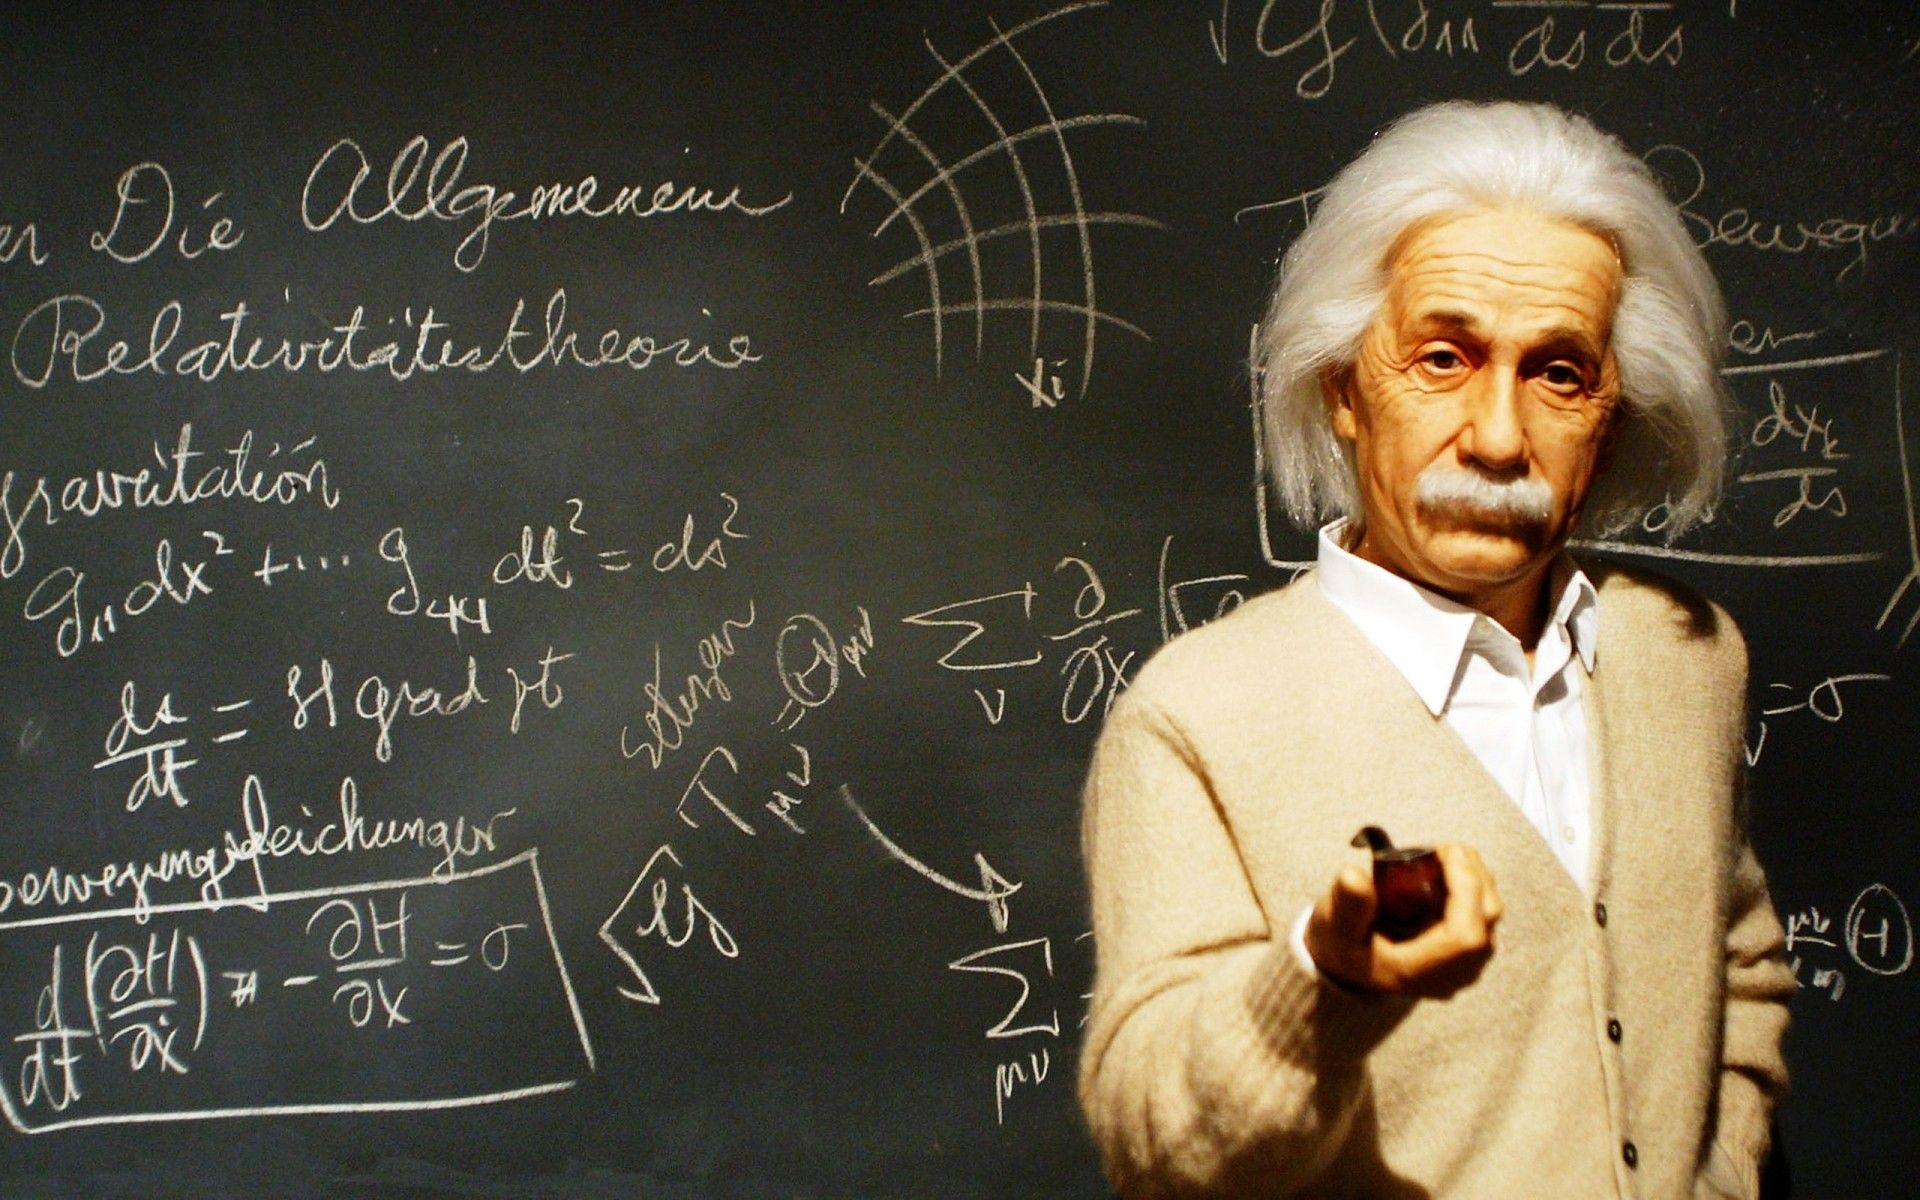 should science clone another albert einstein